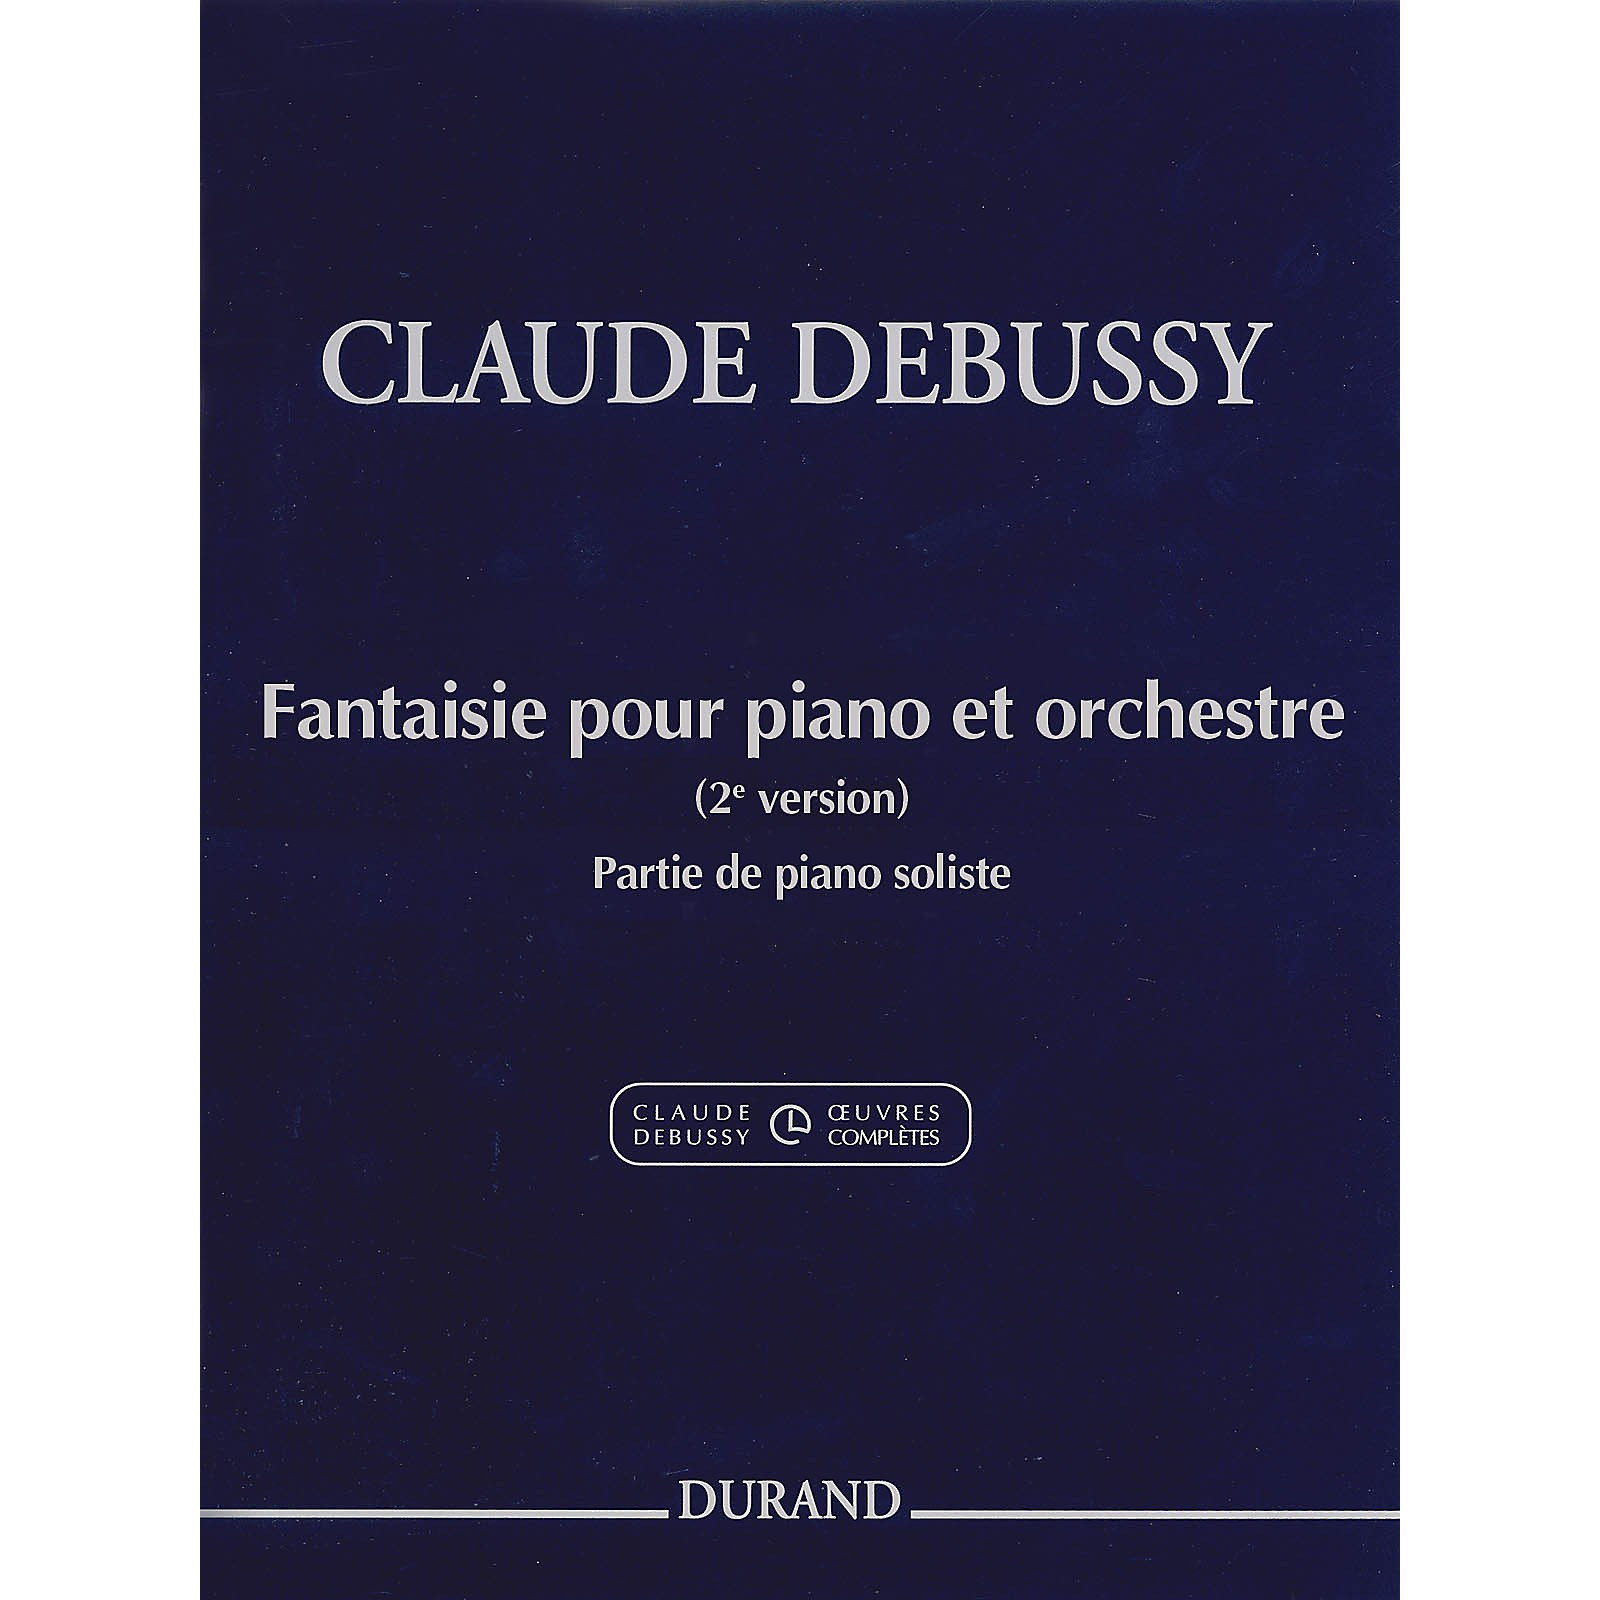 Editions Durand Fantaisie pour piano et orchestre Editions Durand Softcover by Debussy Edited by Jean-Pierre Marty